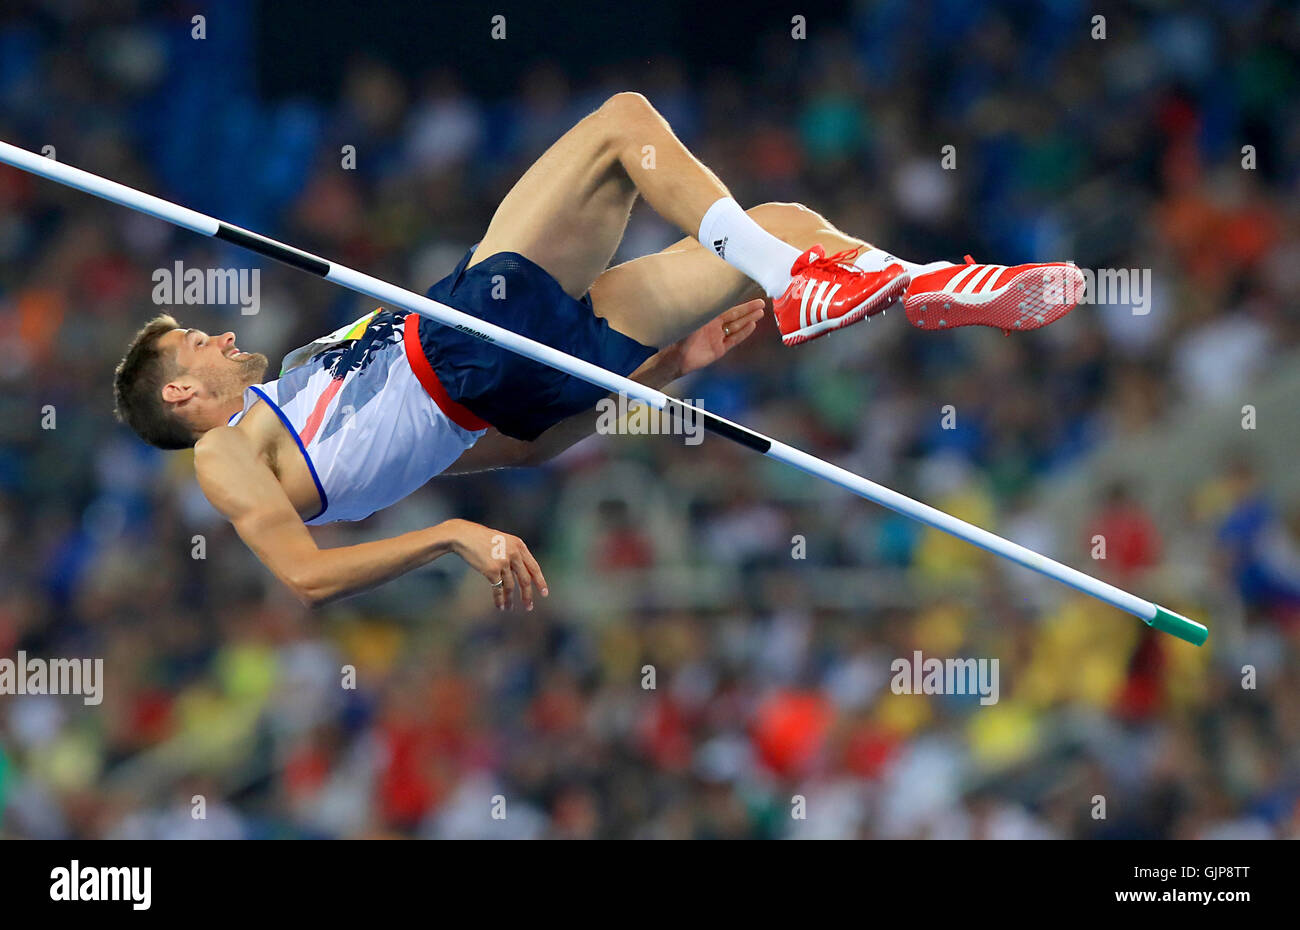 Great Britain's Robert Grabarz competes in the Mens High Jump Final at the Olympic Stadium on the eleventh day - Stock Image